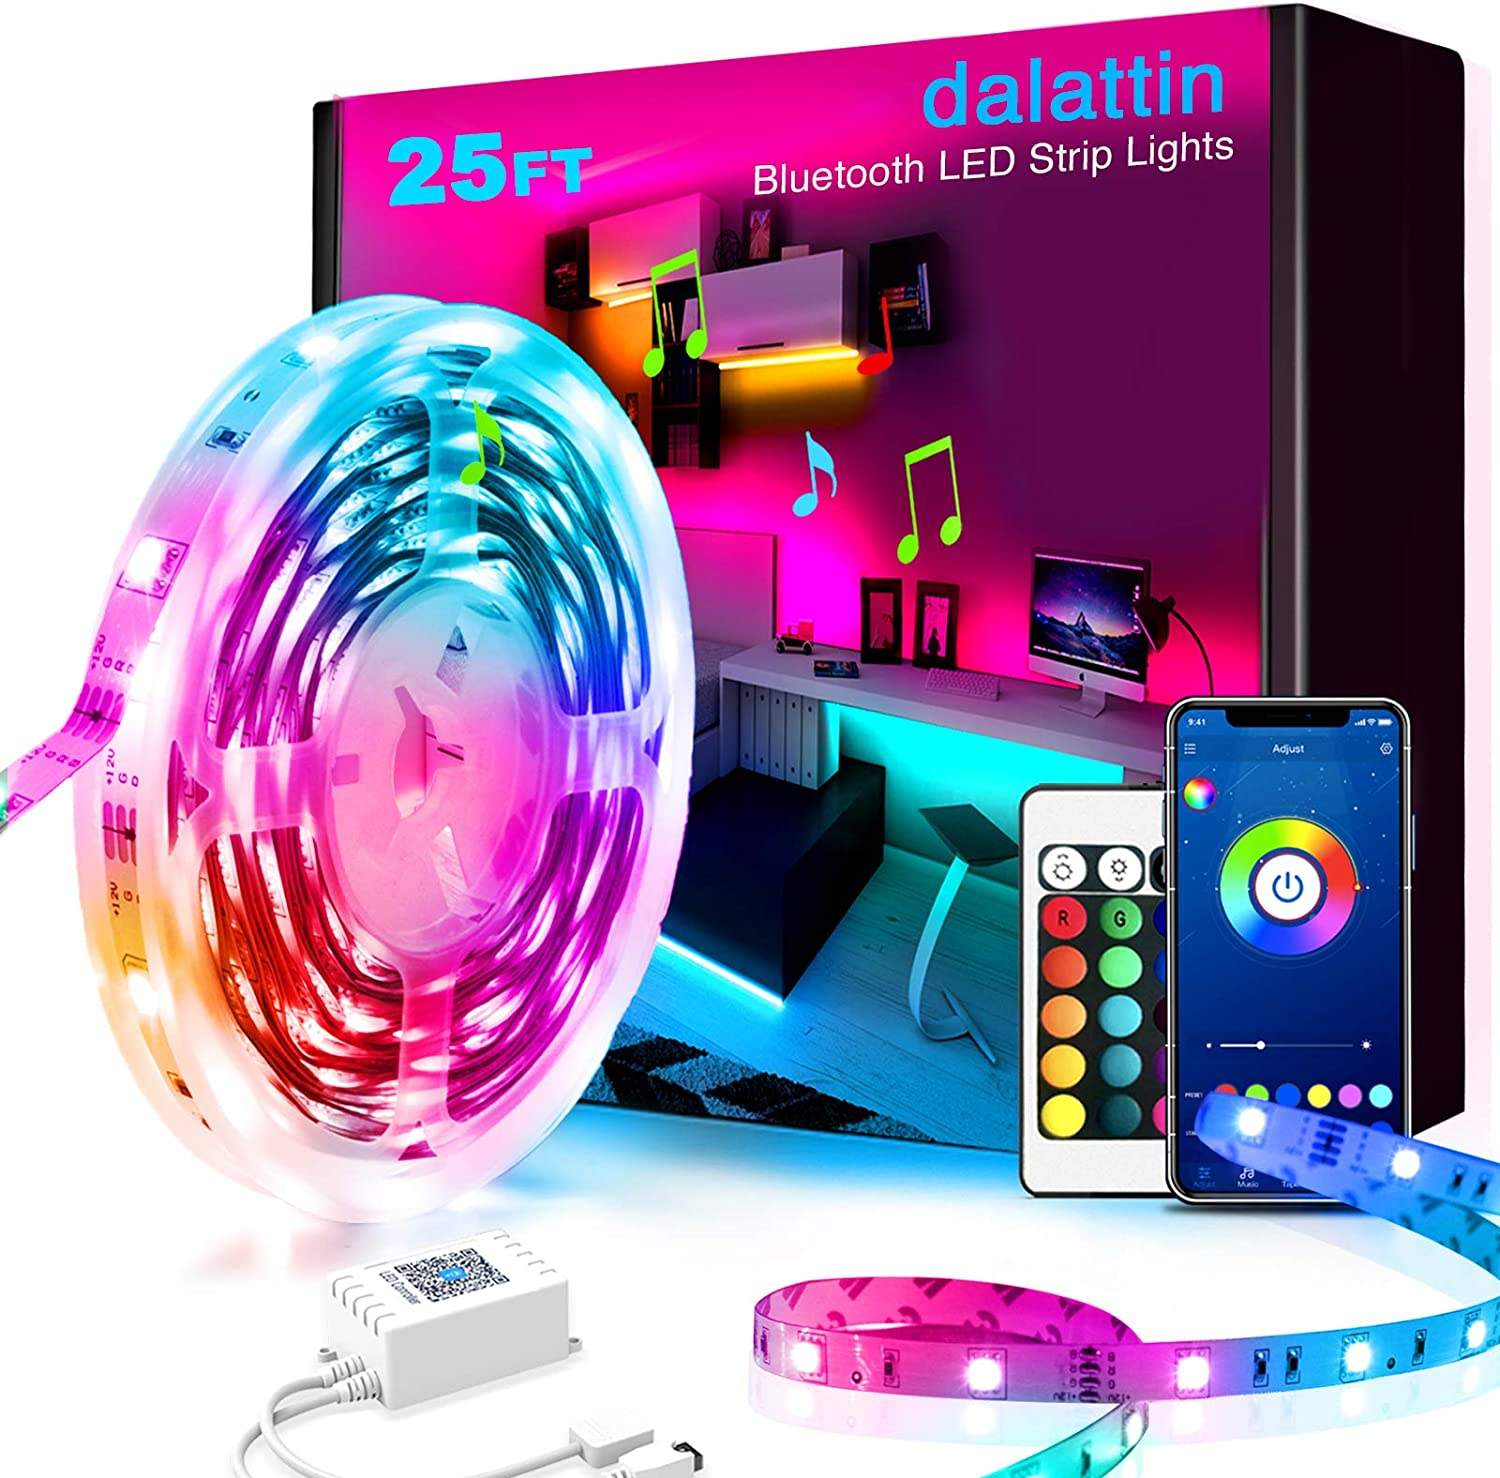 25ft Max 43% OFF Led Lights Smart dalattin C Inventory cleanup selling sale for with App Bedroom